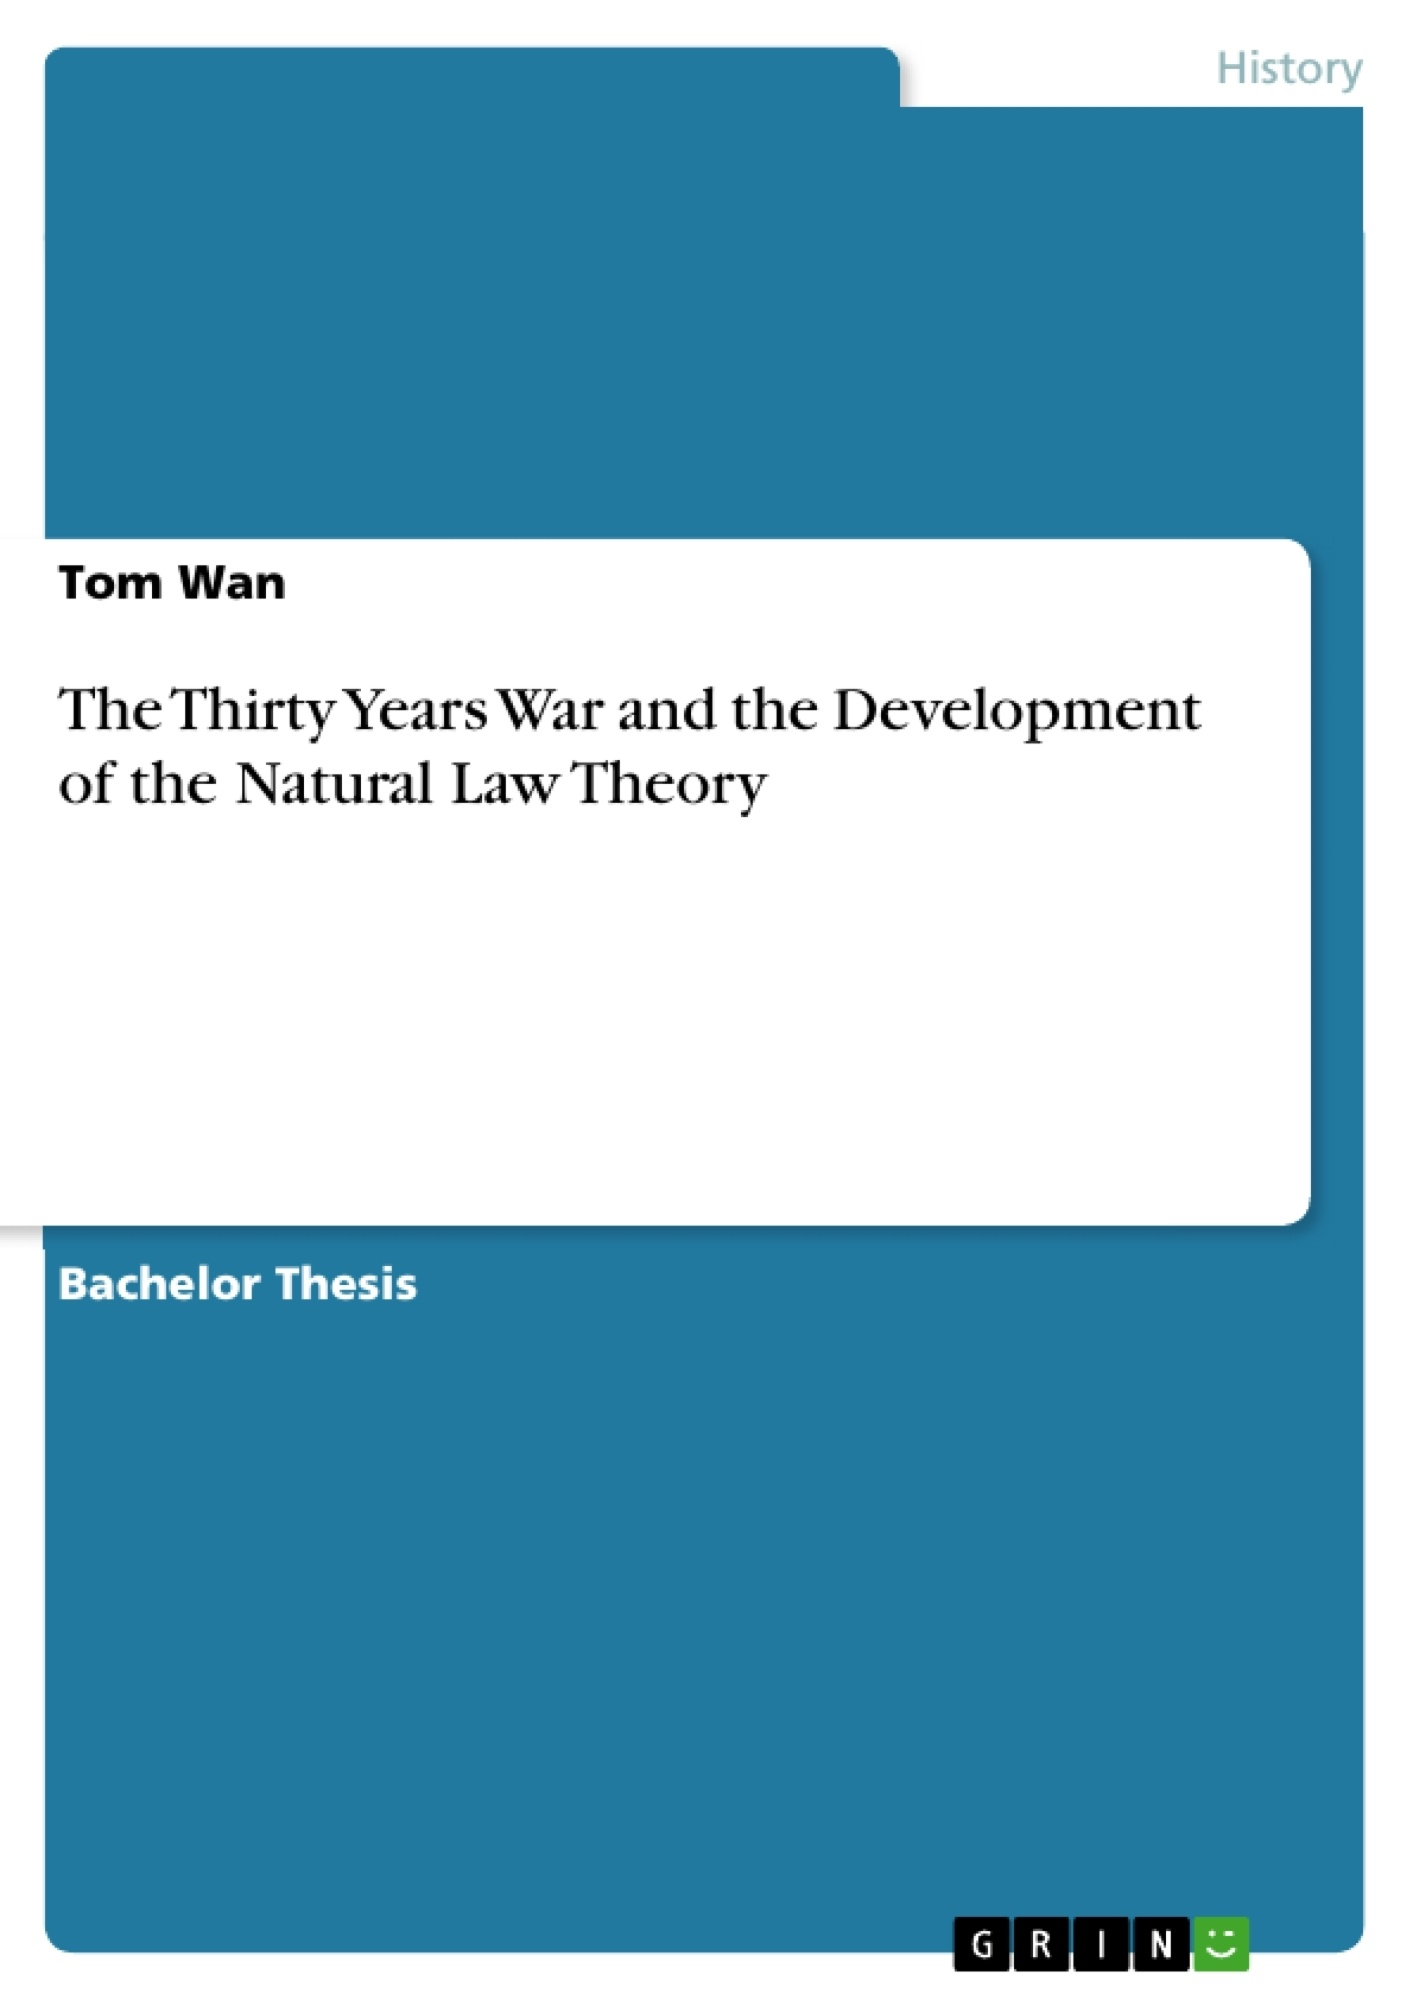 Title: The Thirty Years War and the Development of the Natural Law Theory